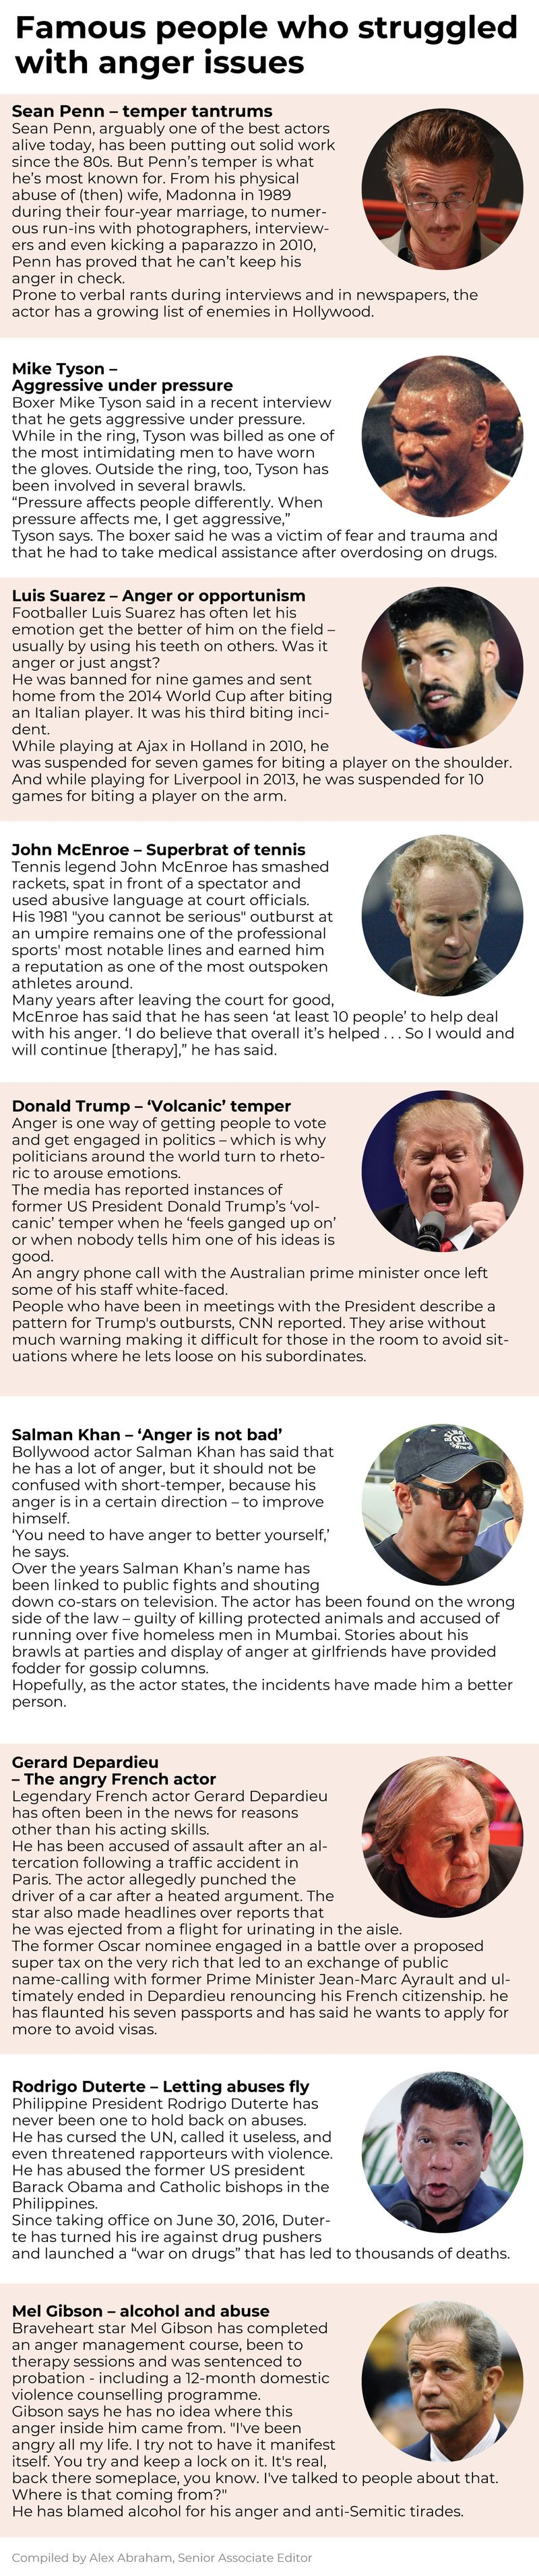 Famous people who had anger issues